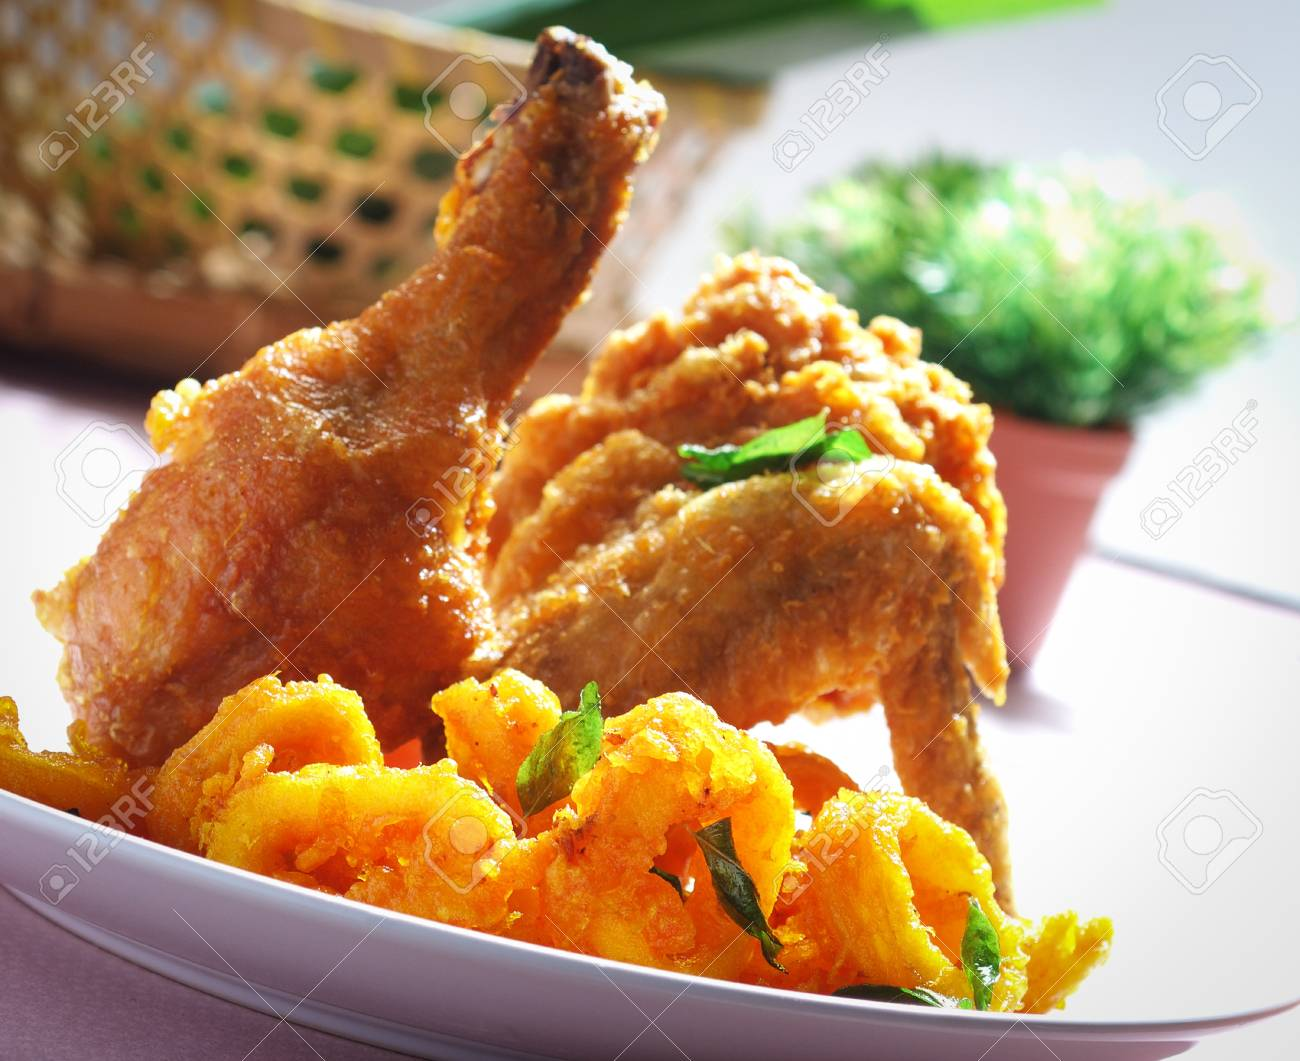 Fried Chicken and squid snack Stock Photo - 12648566